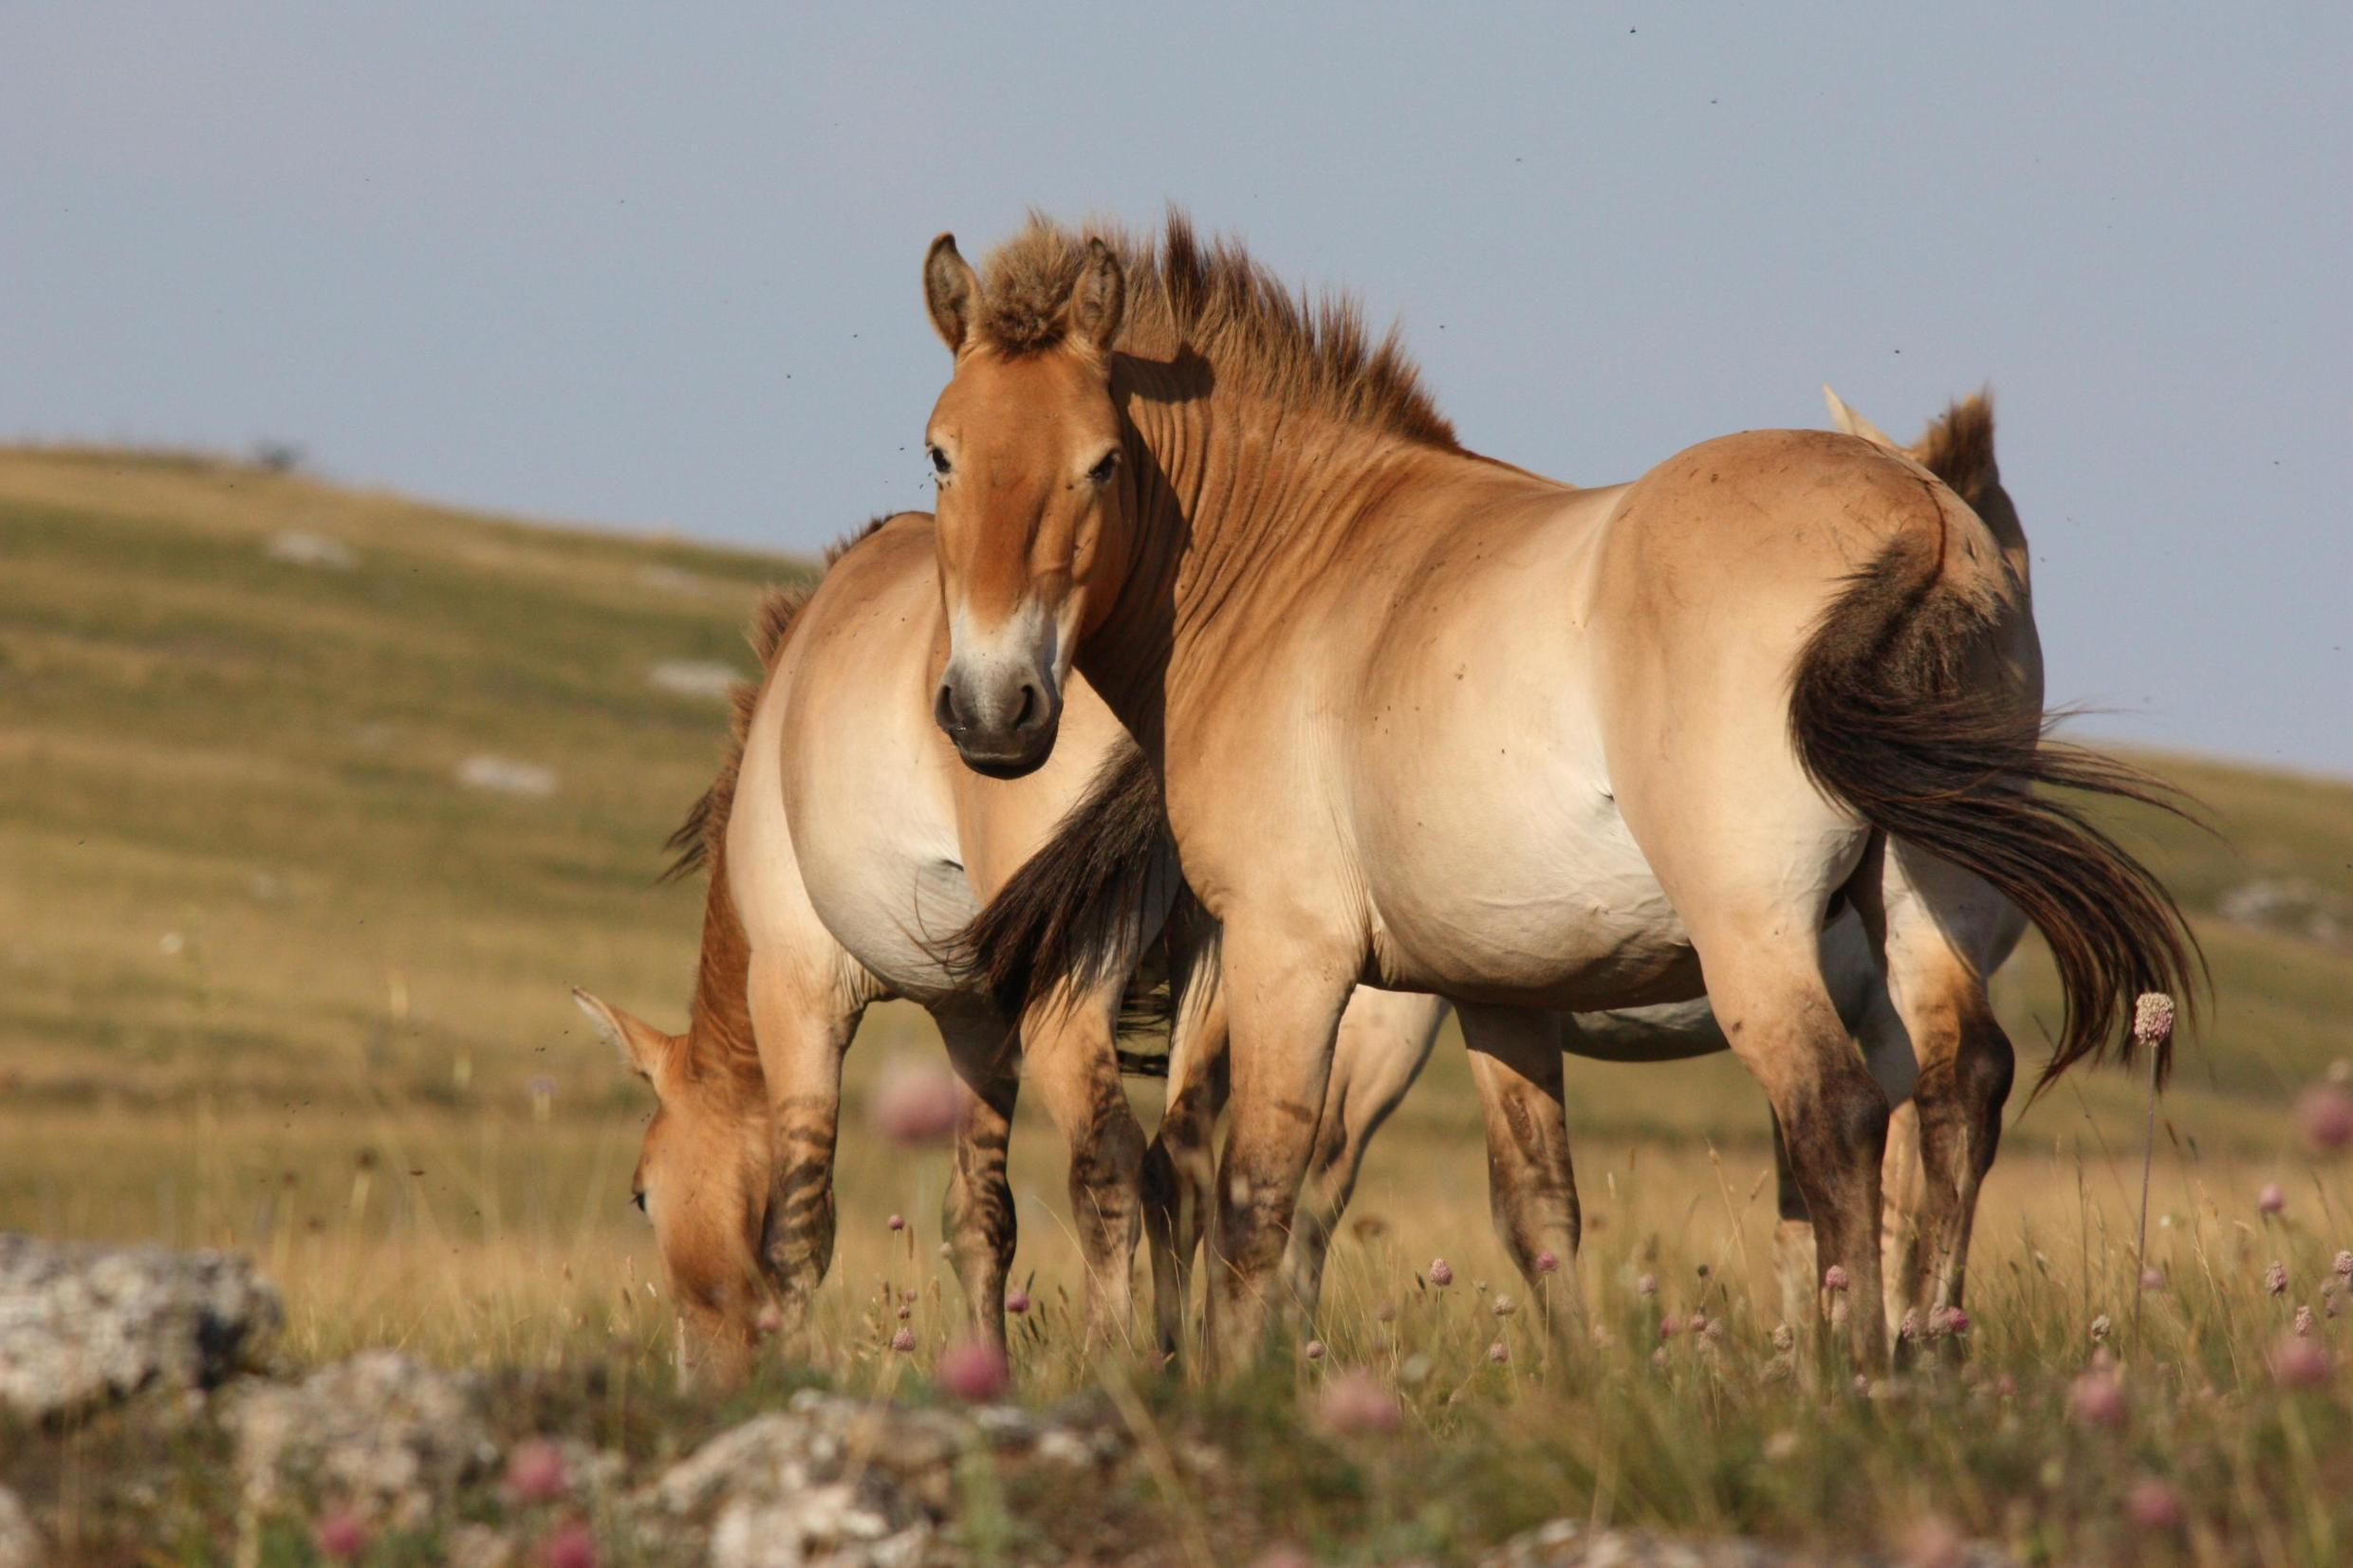 Przewalski or Takhi horses on the Causse Méjean plateau in the southern Cevennes region in France. Here stallion Lou Ravi with the distinctive raised mane and stripes across its legs.